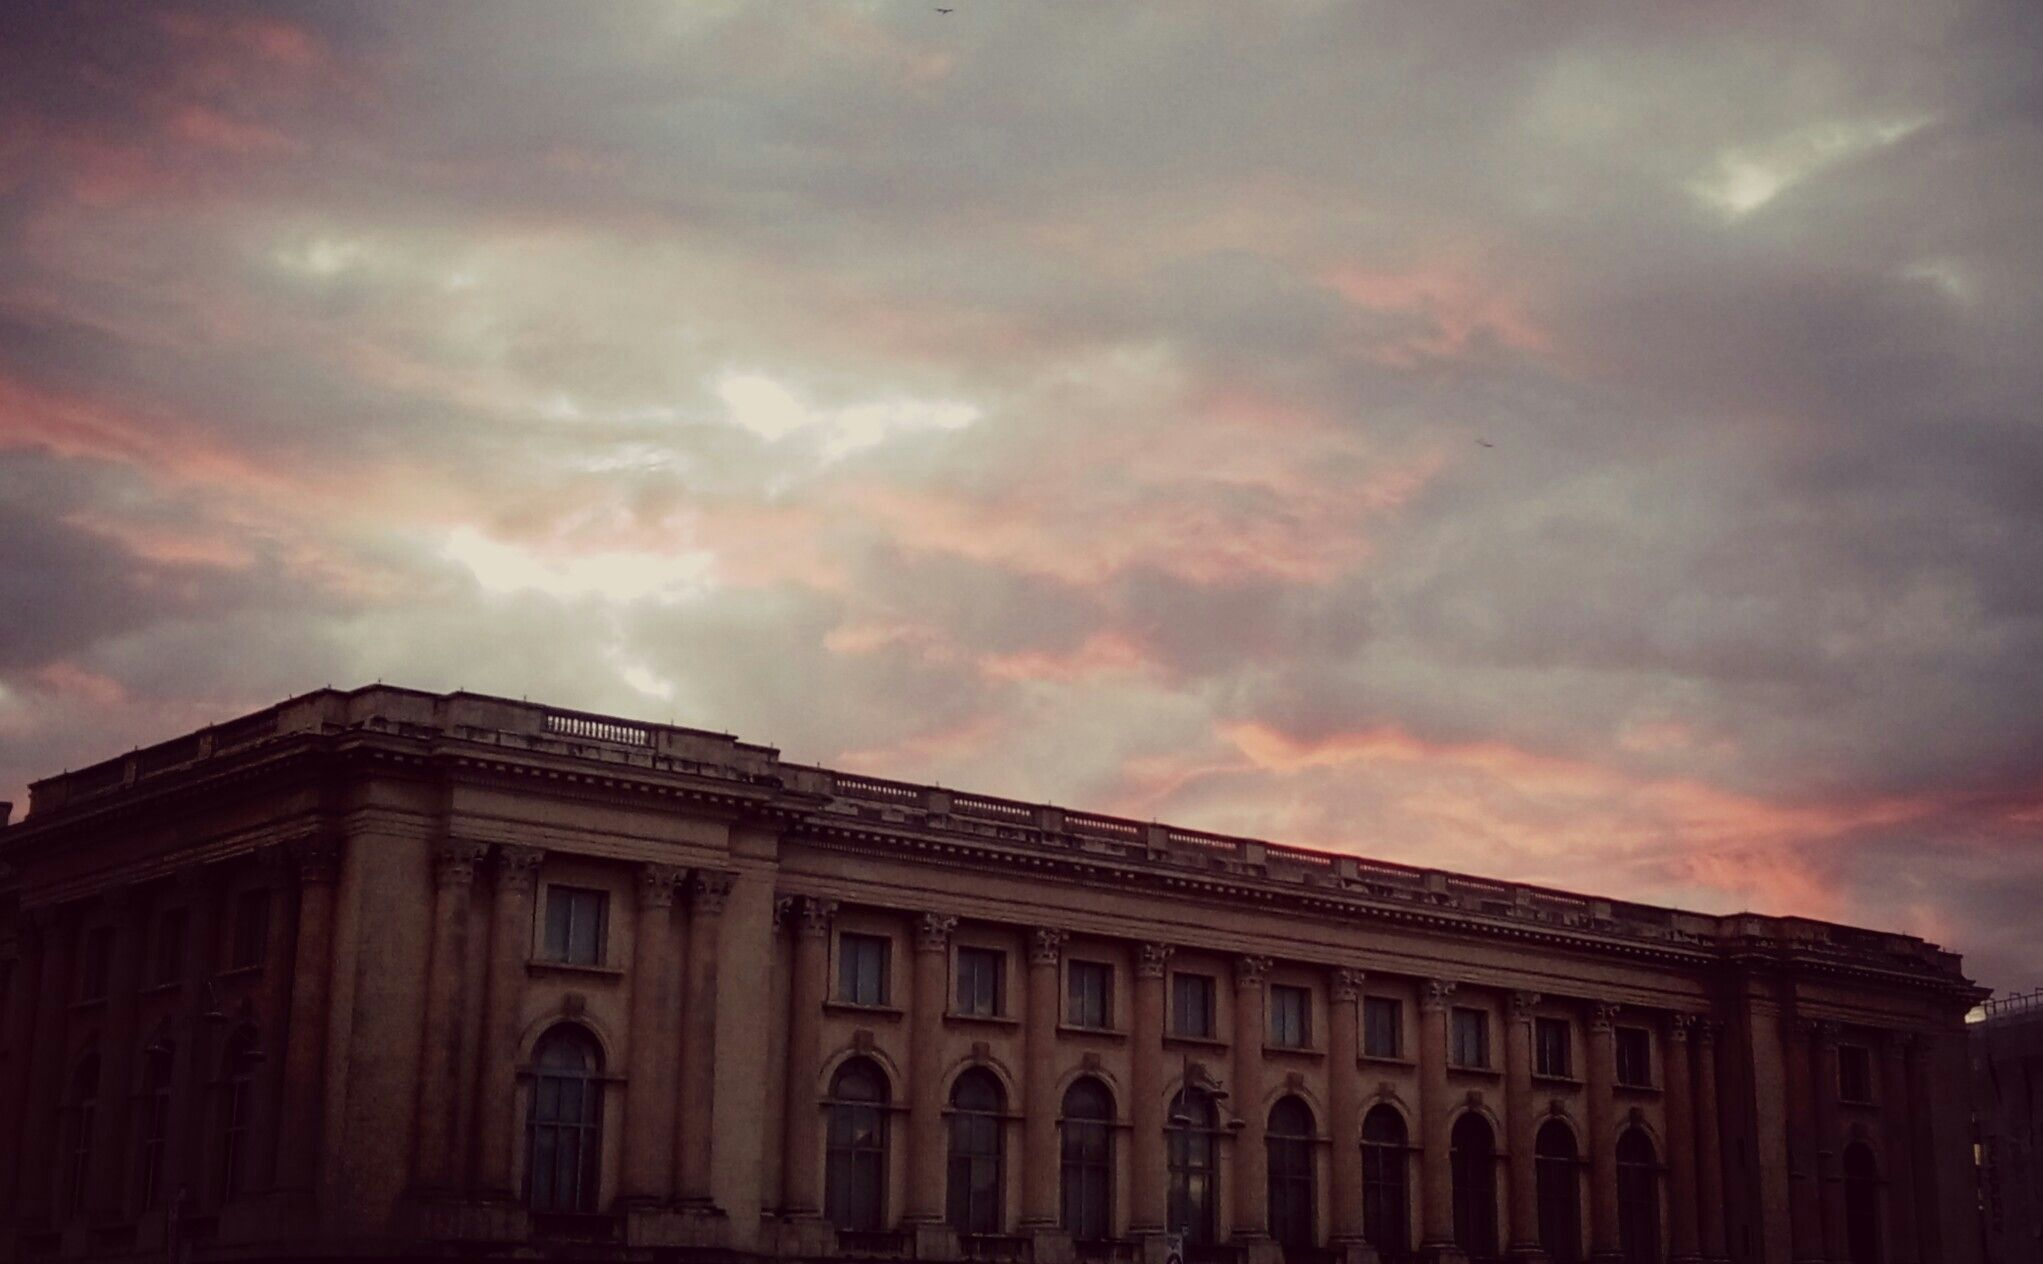 Art Museum. Sunset. Lights in the sky. Arhitecture.